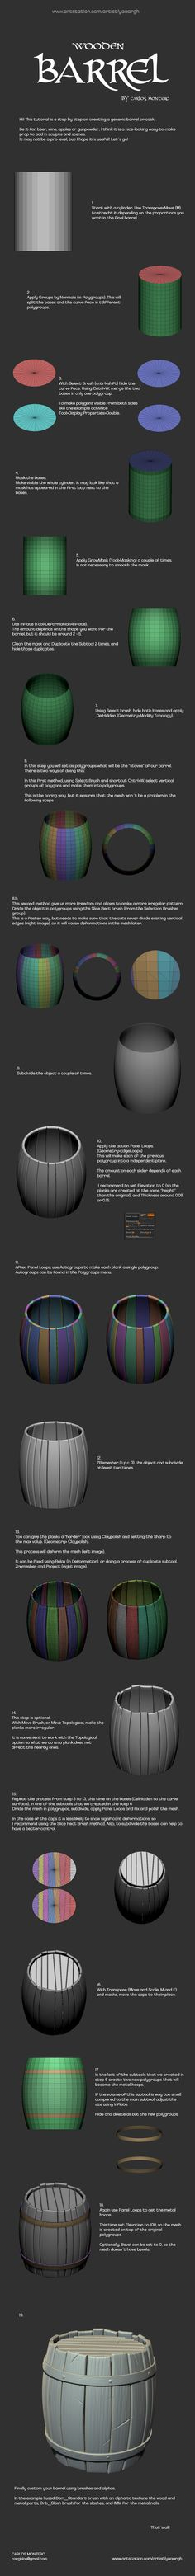 Hi! I´m happy to share with you all my second tutorial: A barrel (or cask). I think this tutorial has a medium difficulty, so I hope is affordable and…